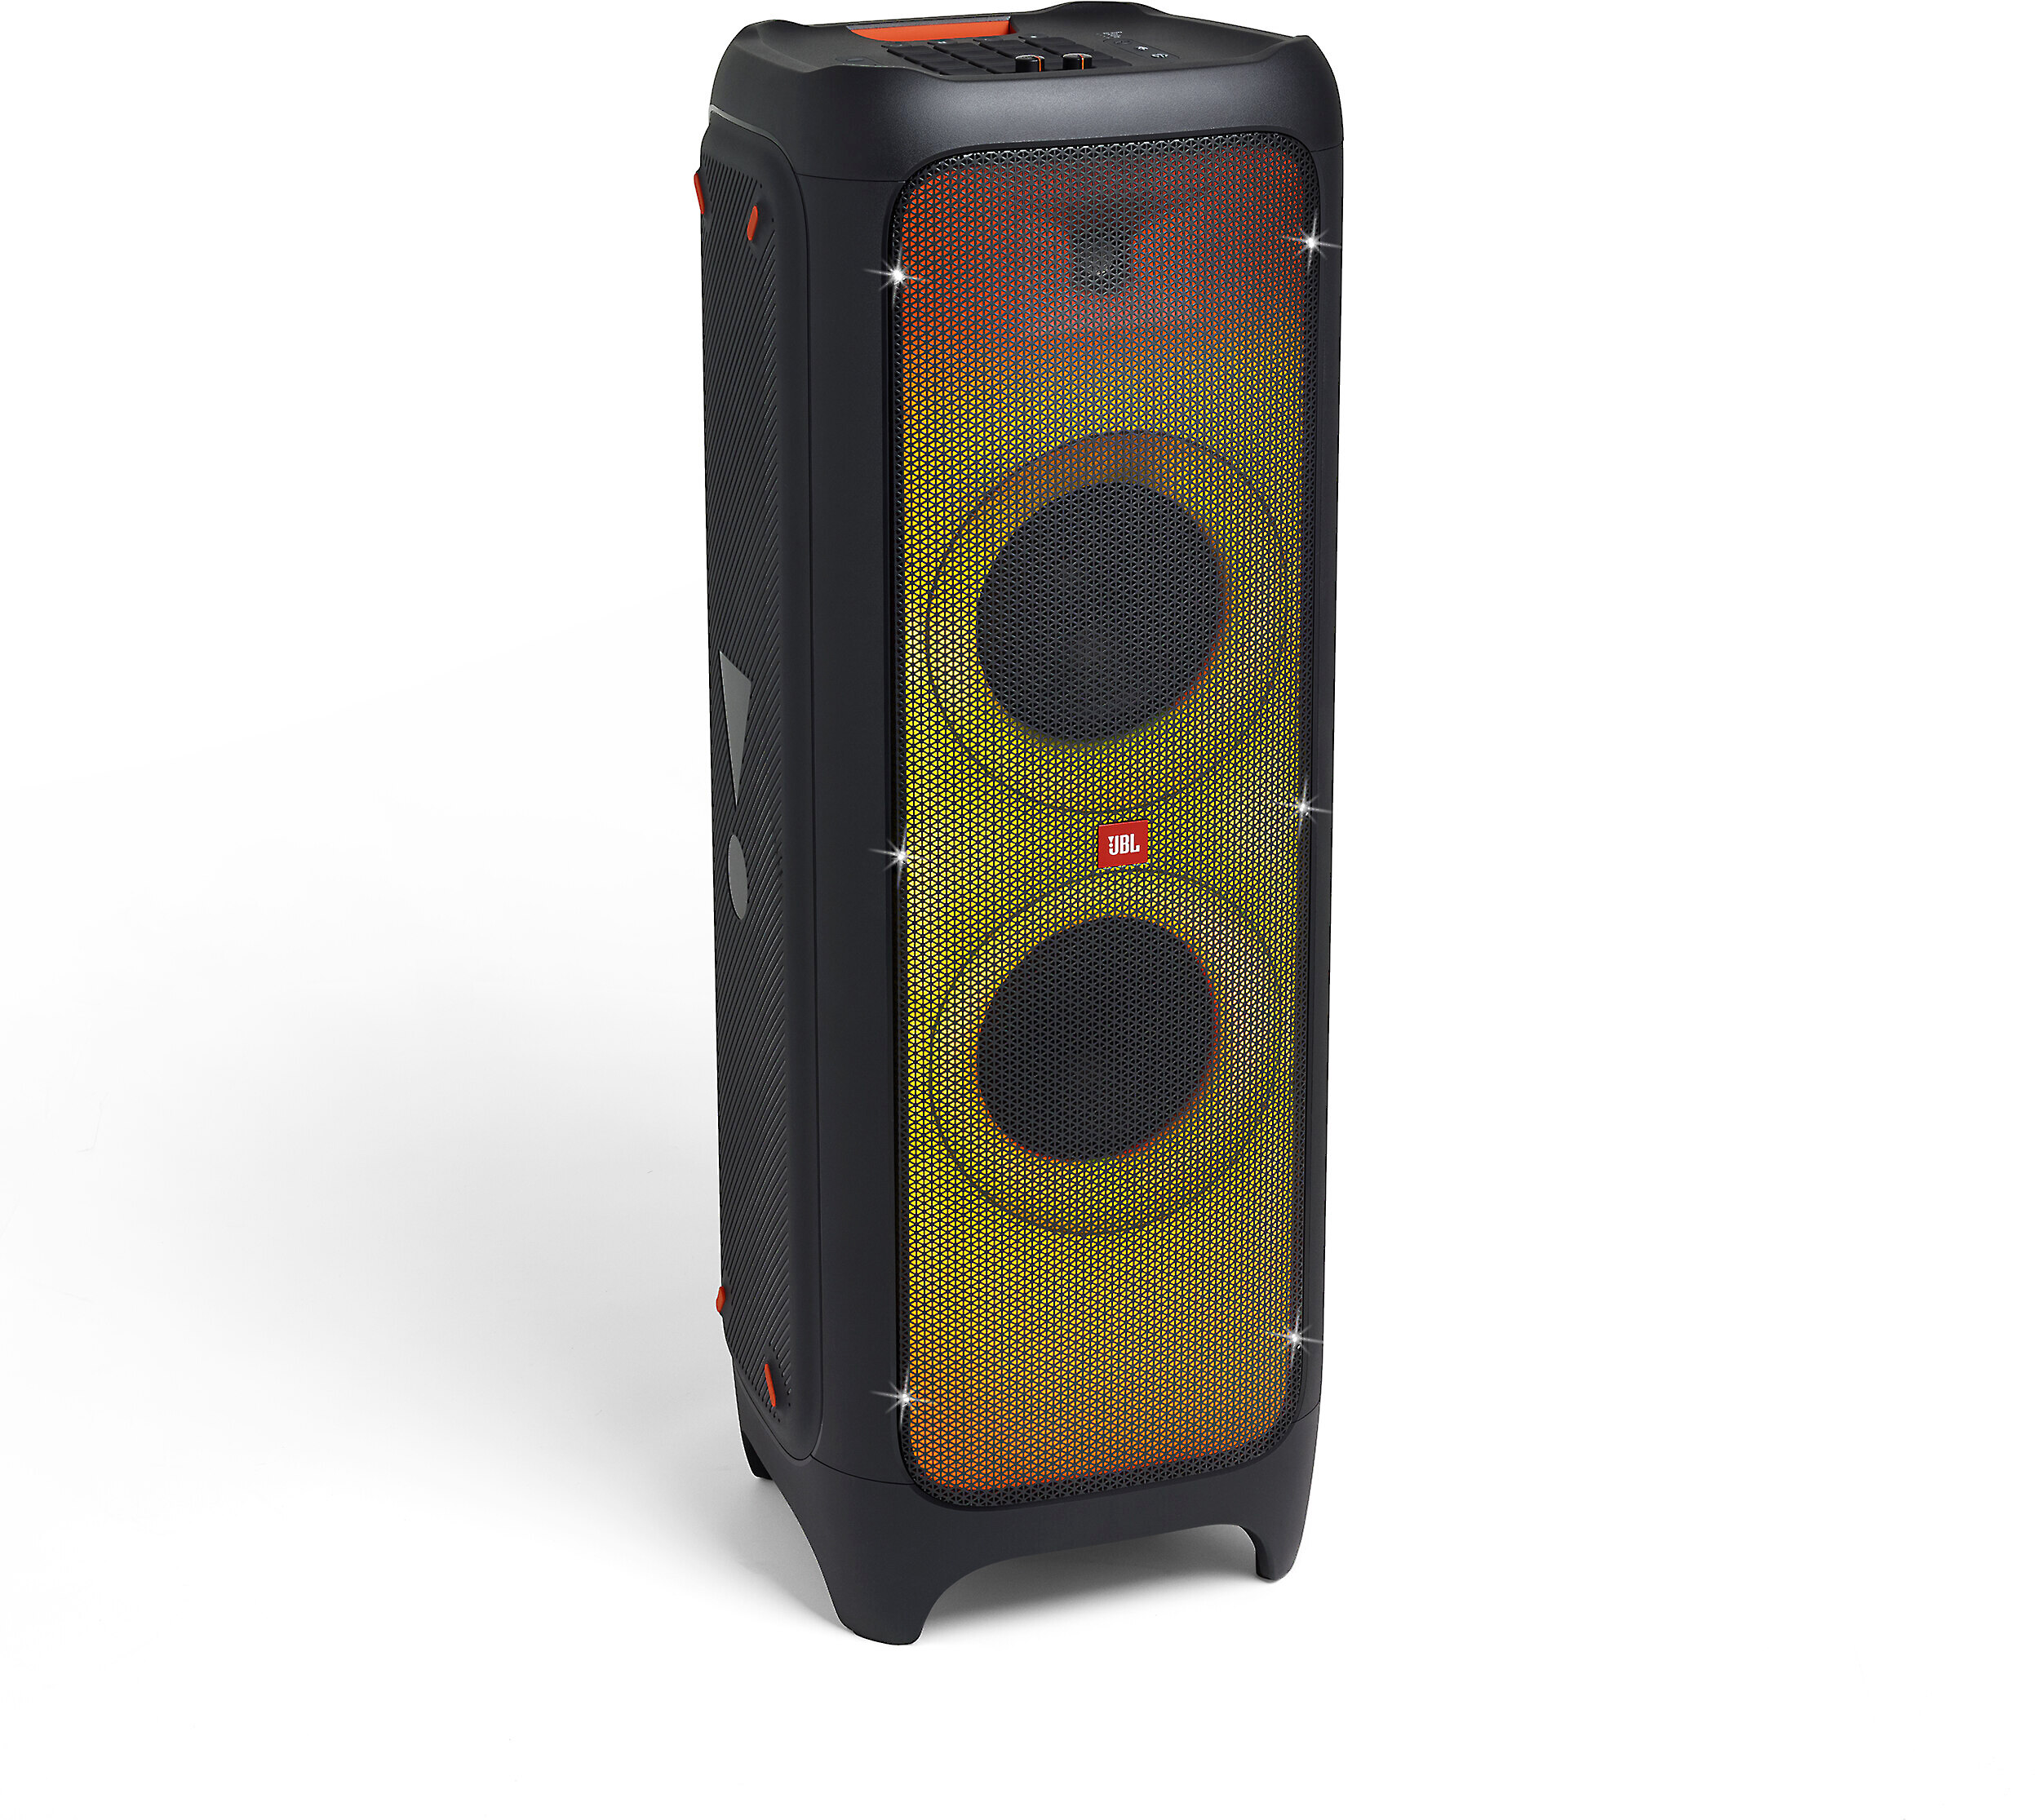 Jbl Partybox 1000 Powered Bluetooth Speaker With Light Display At Crutchfield